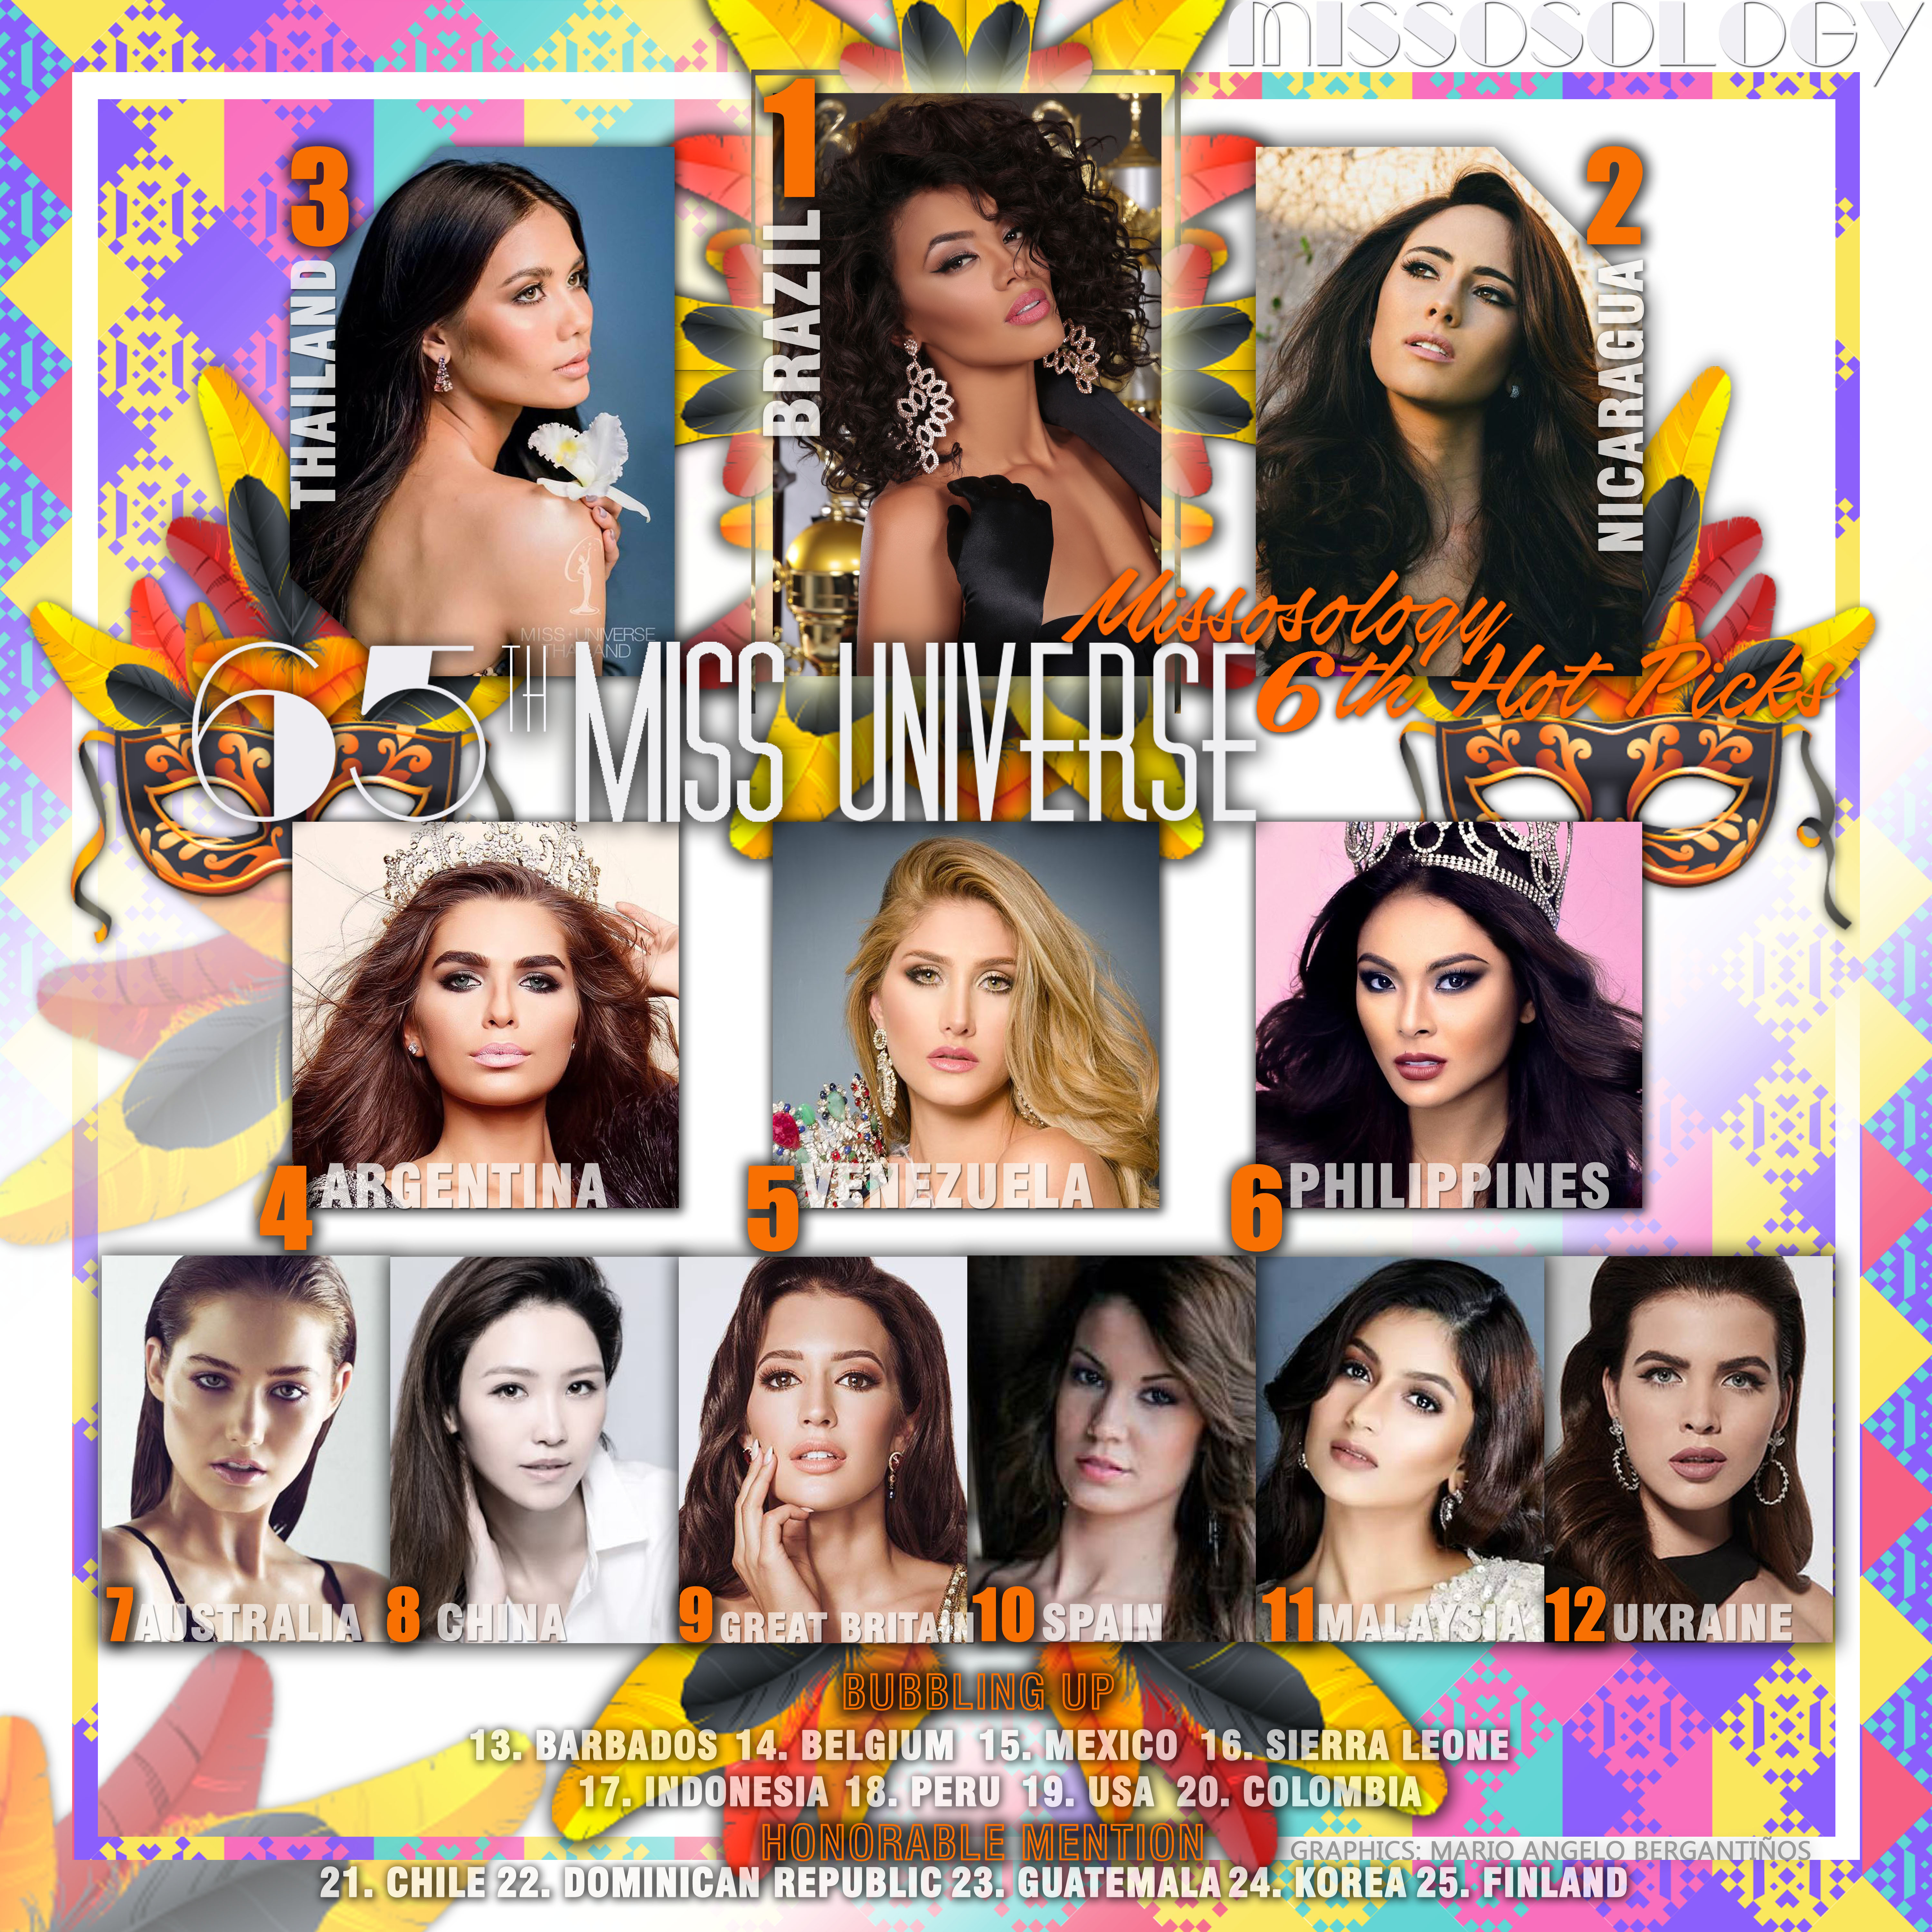 HOTPICKS MISSO 6th MISS UNIVERSE 2016